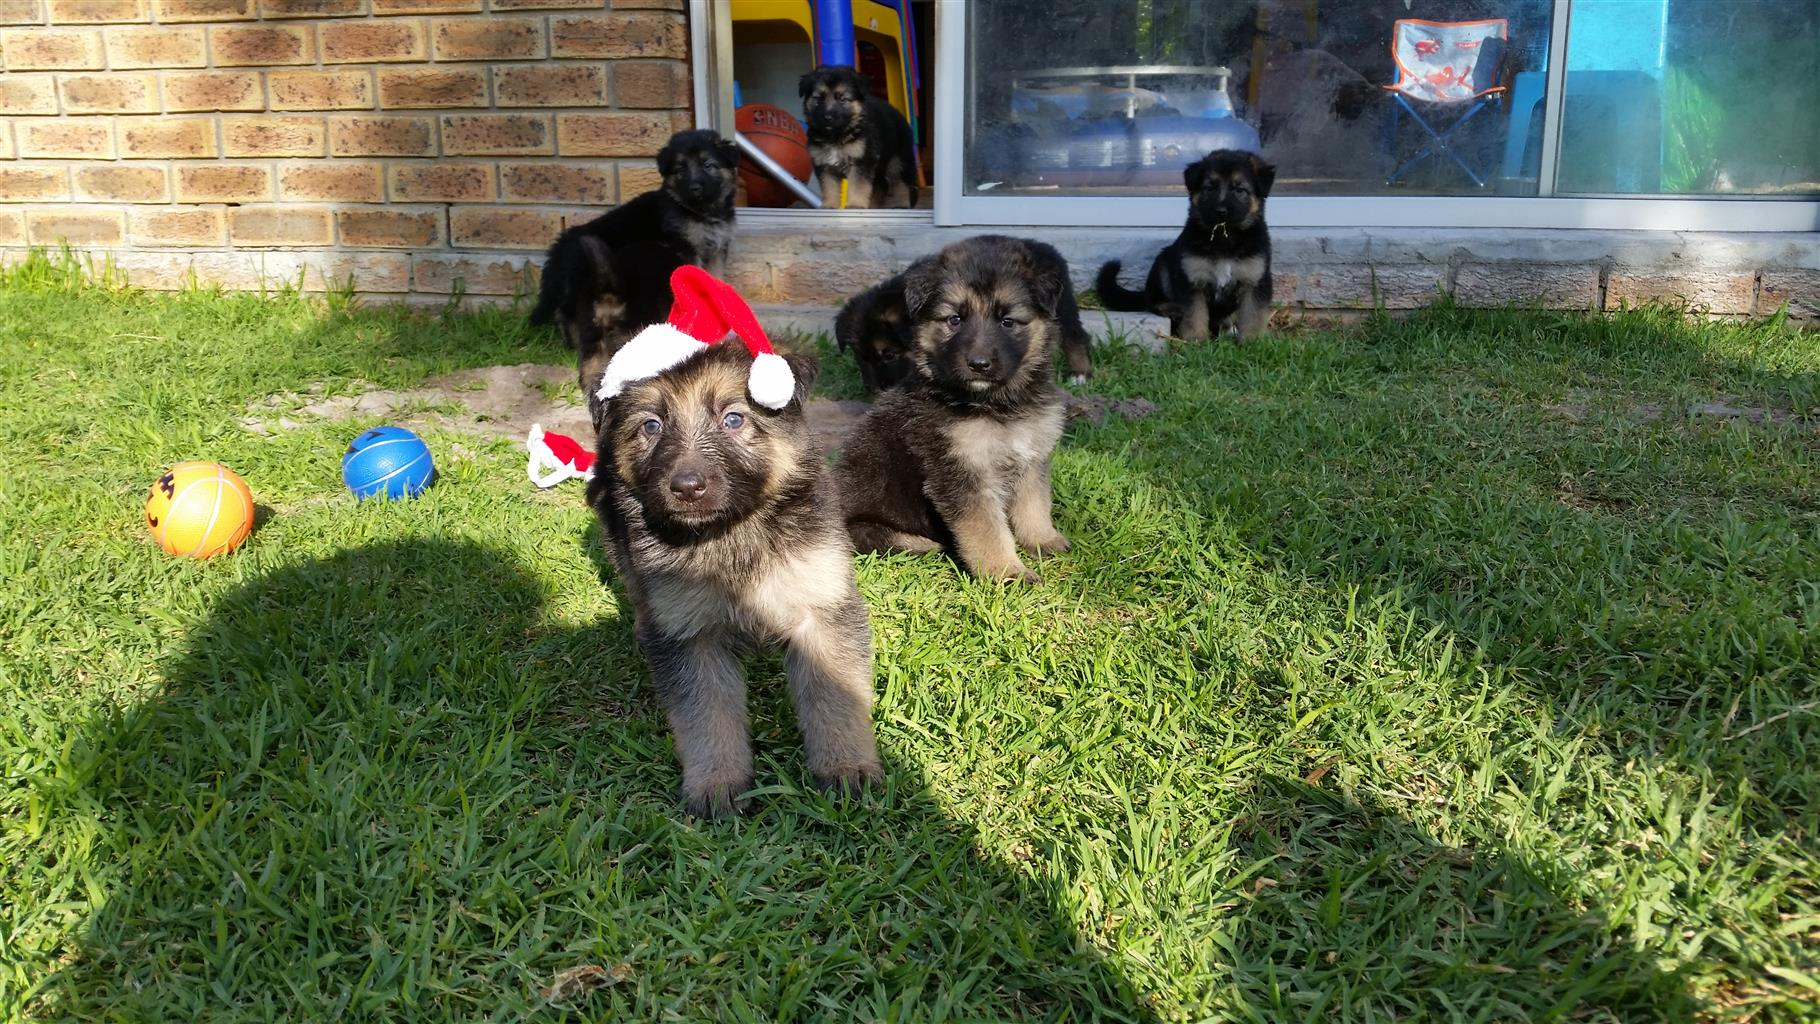 Thorough bred German Shepherd puppies - 8 wks old - medium to long haired